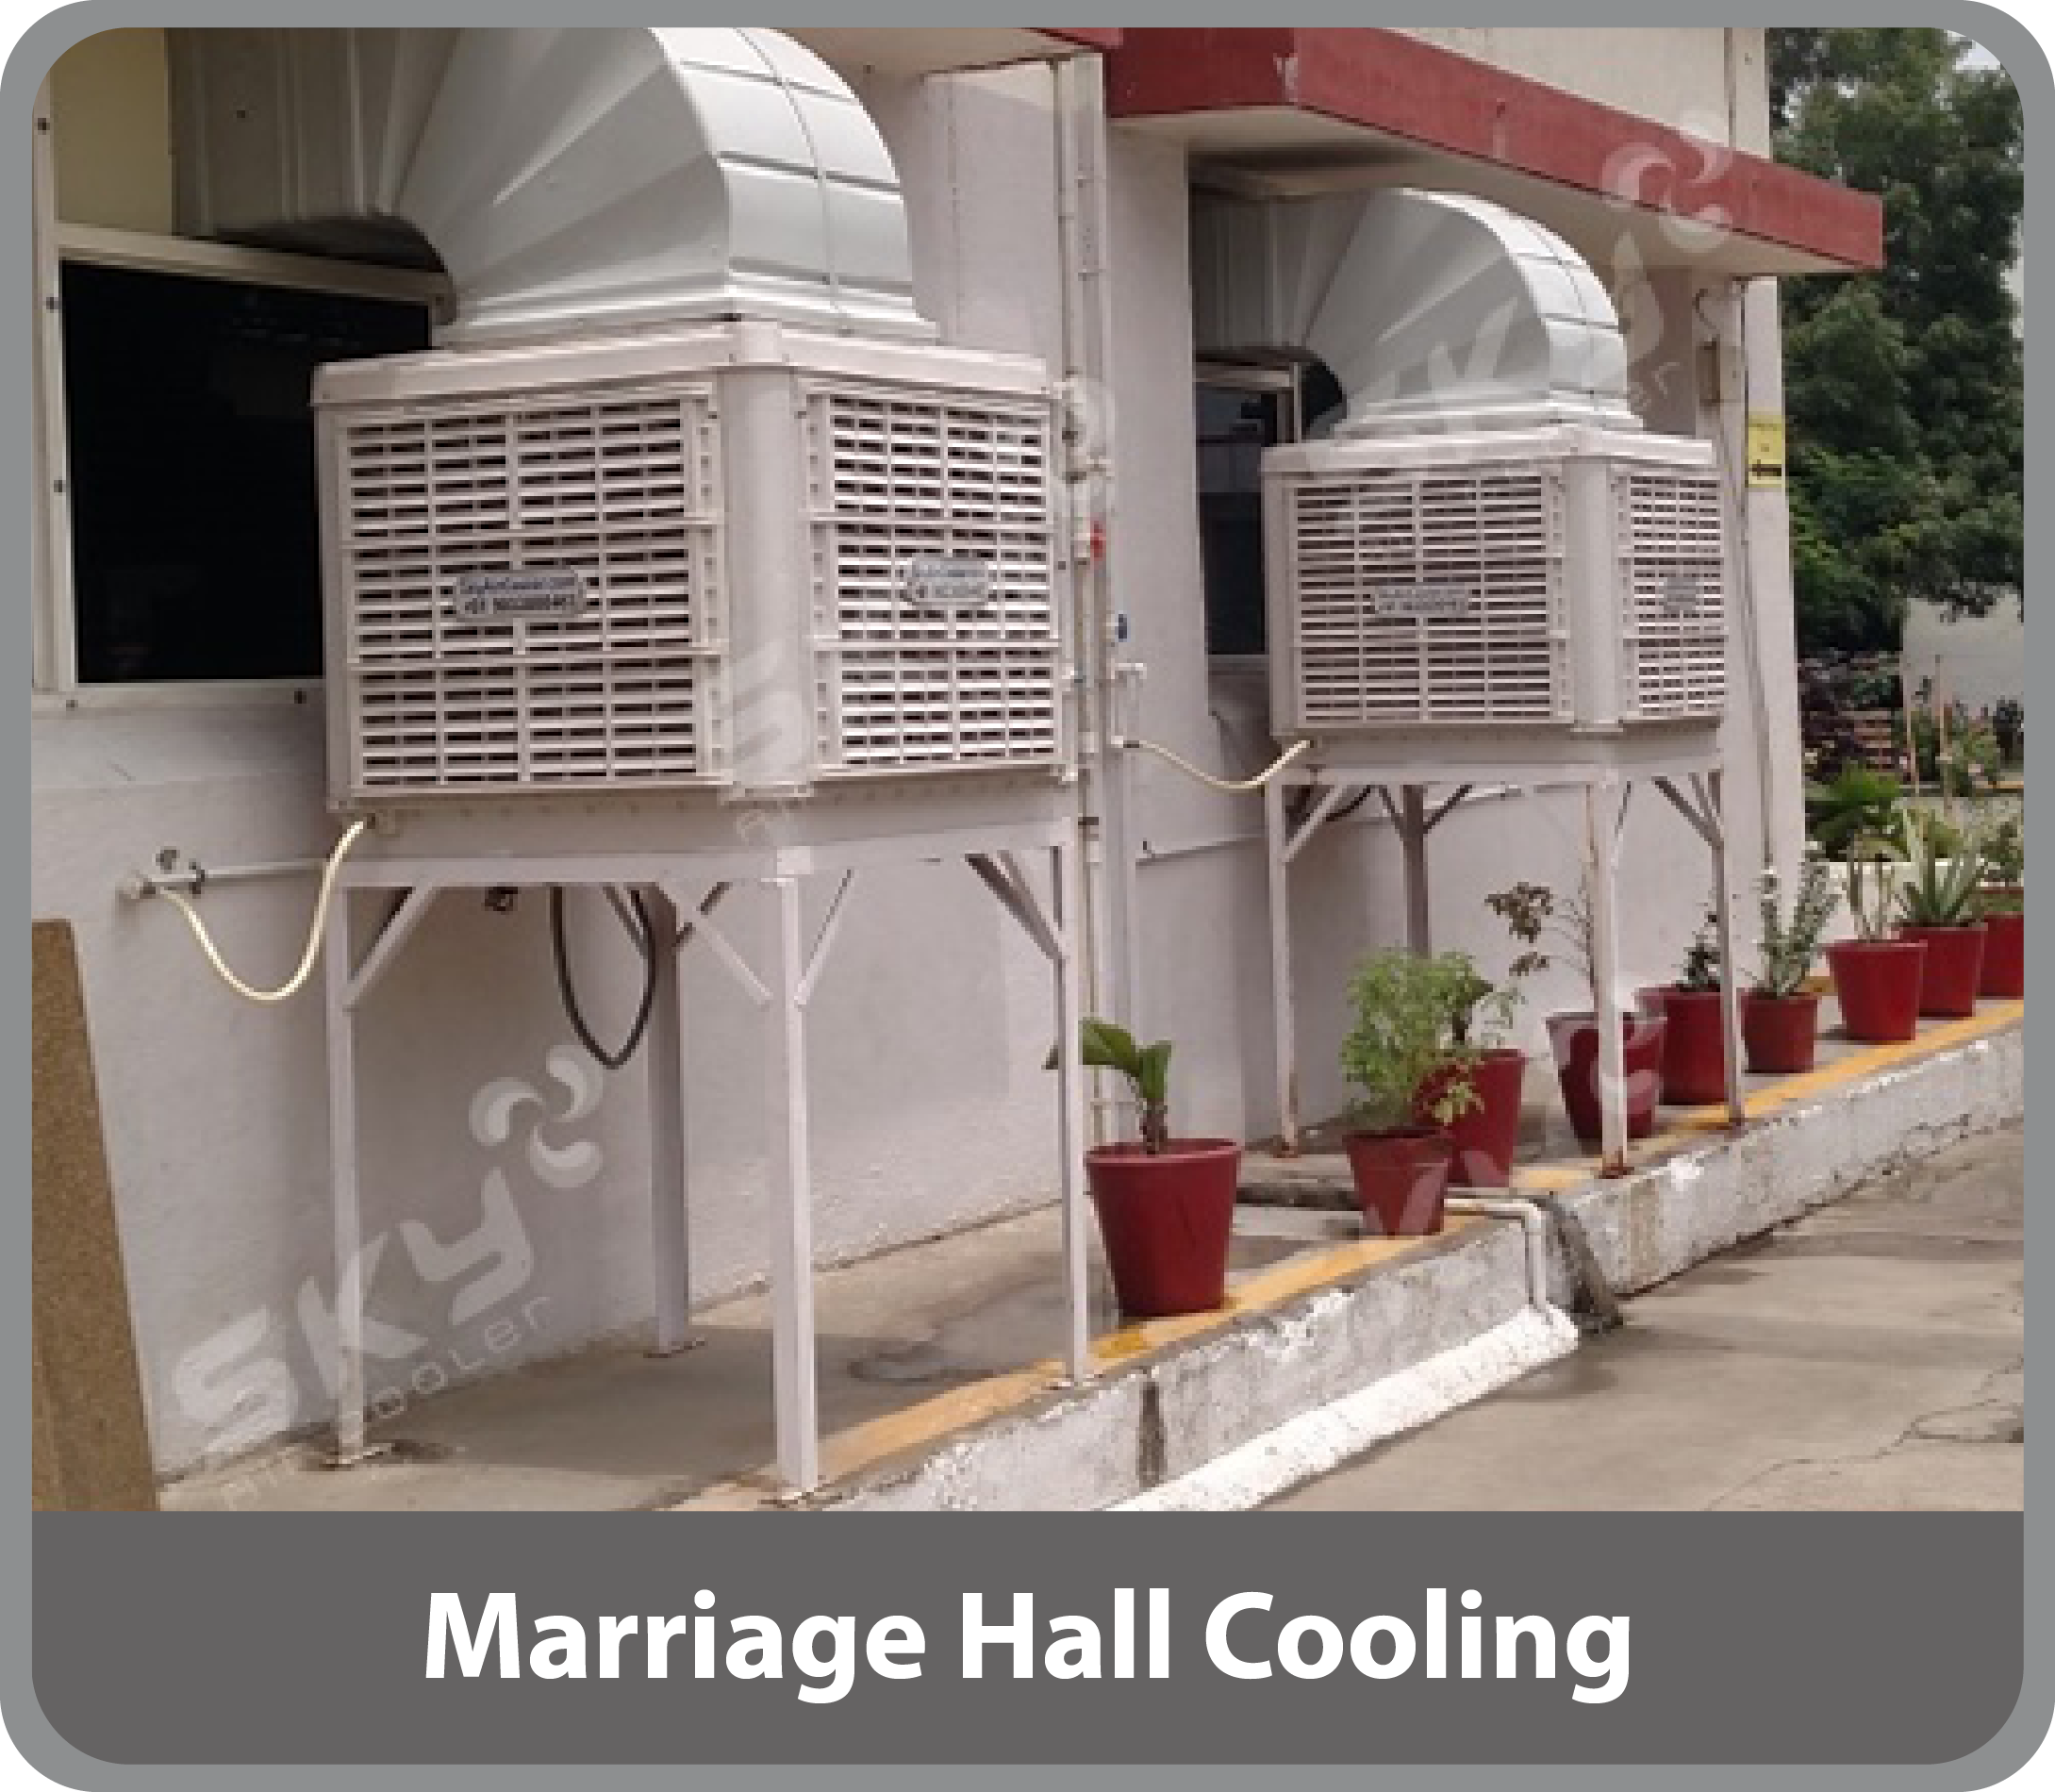 Marriage Hall Cooling